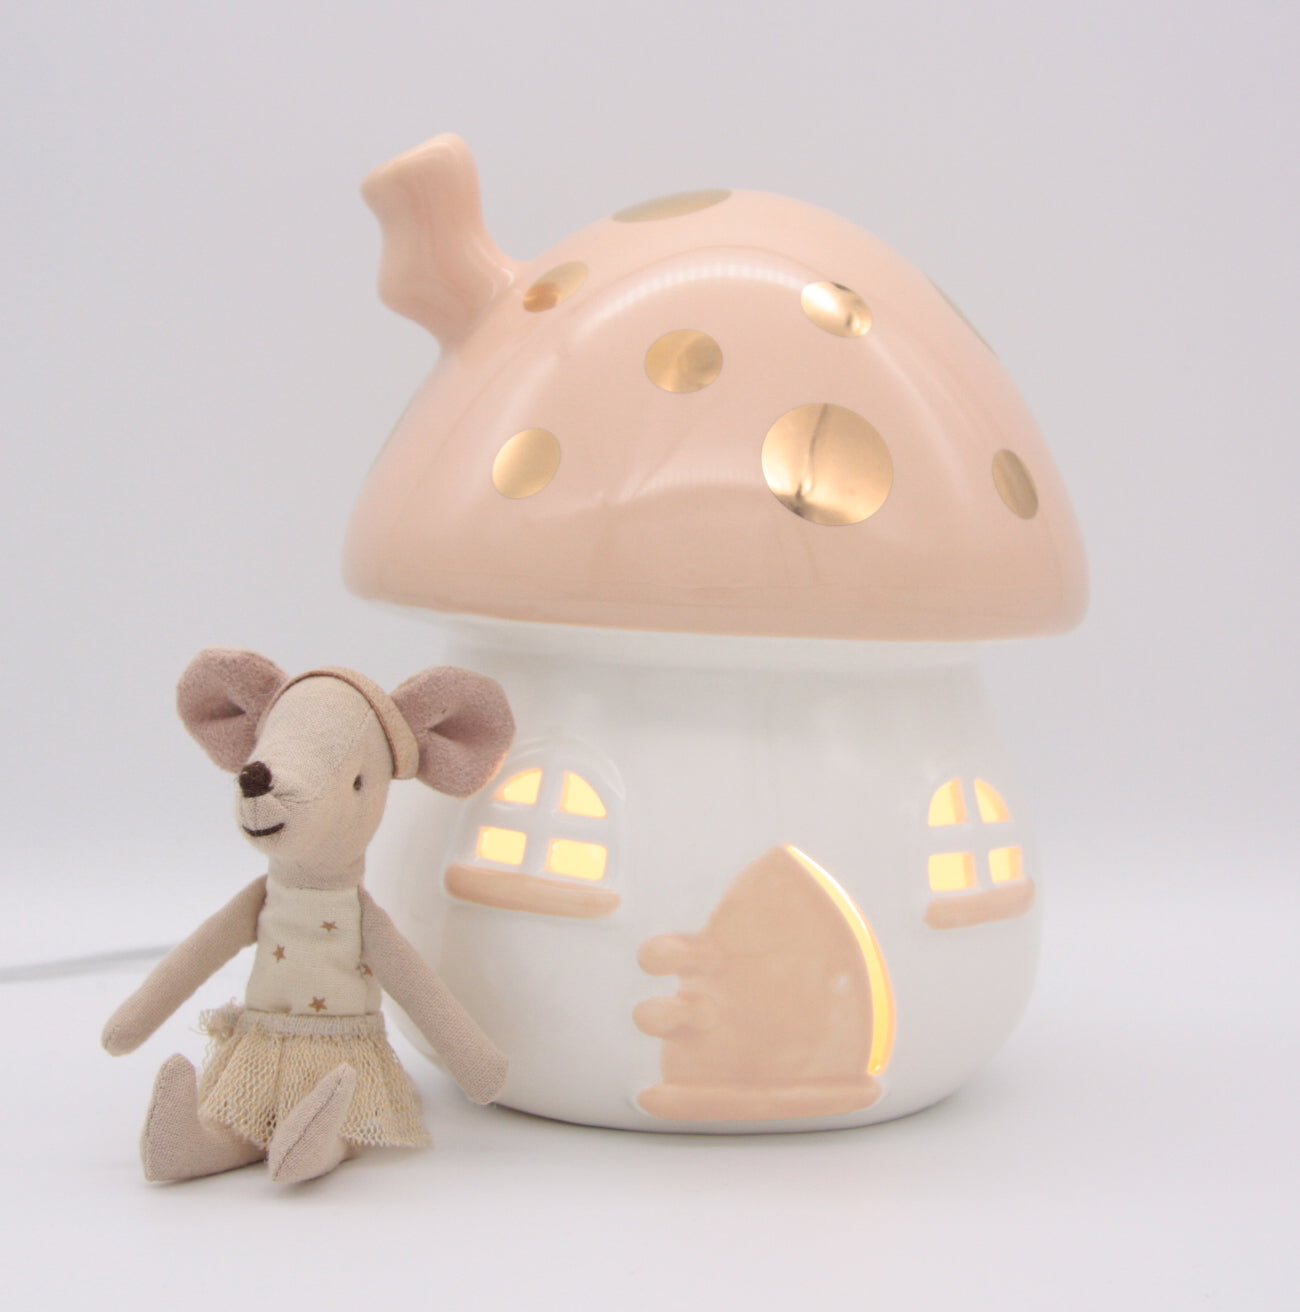 Little Belle Nightlight - Mushroom - Peach and Gold